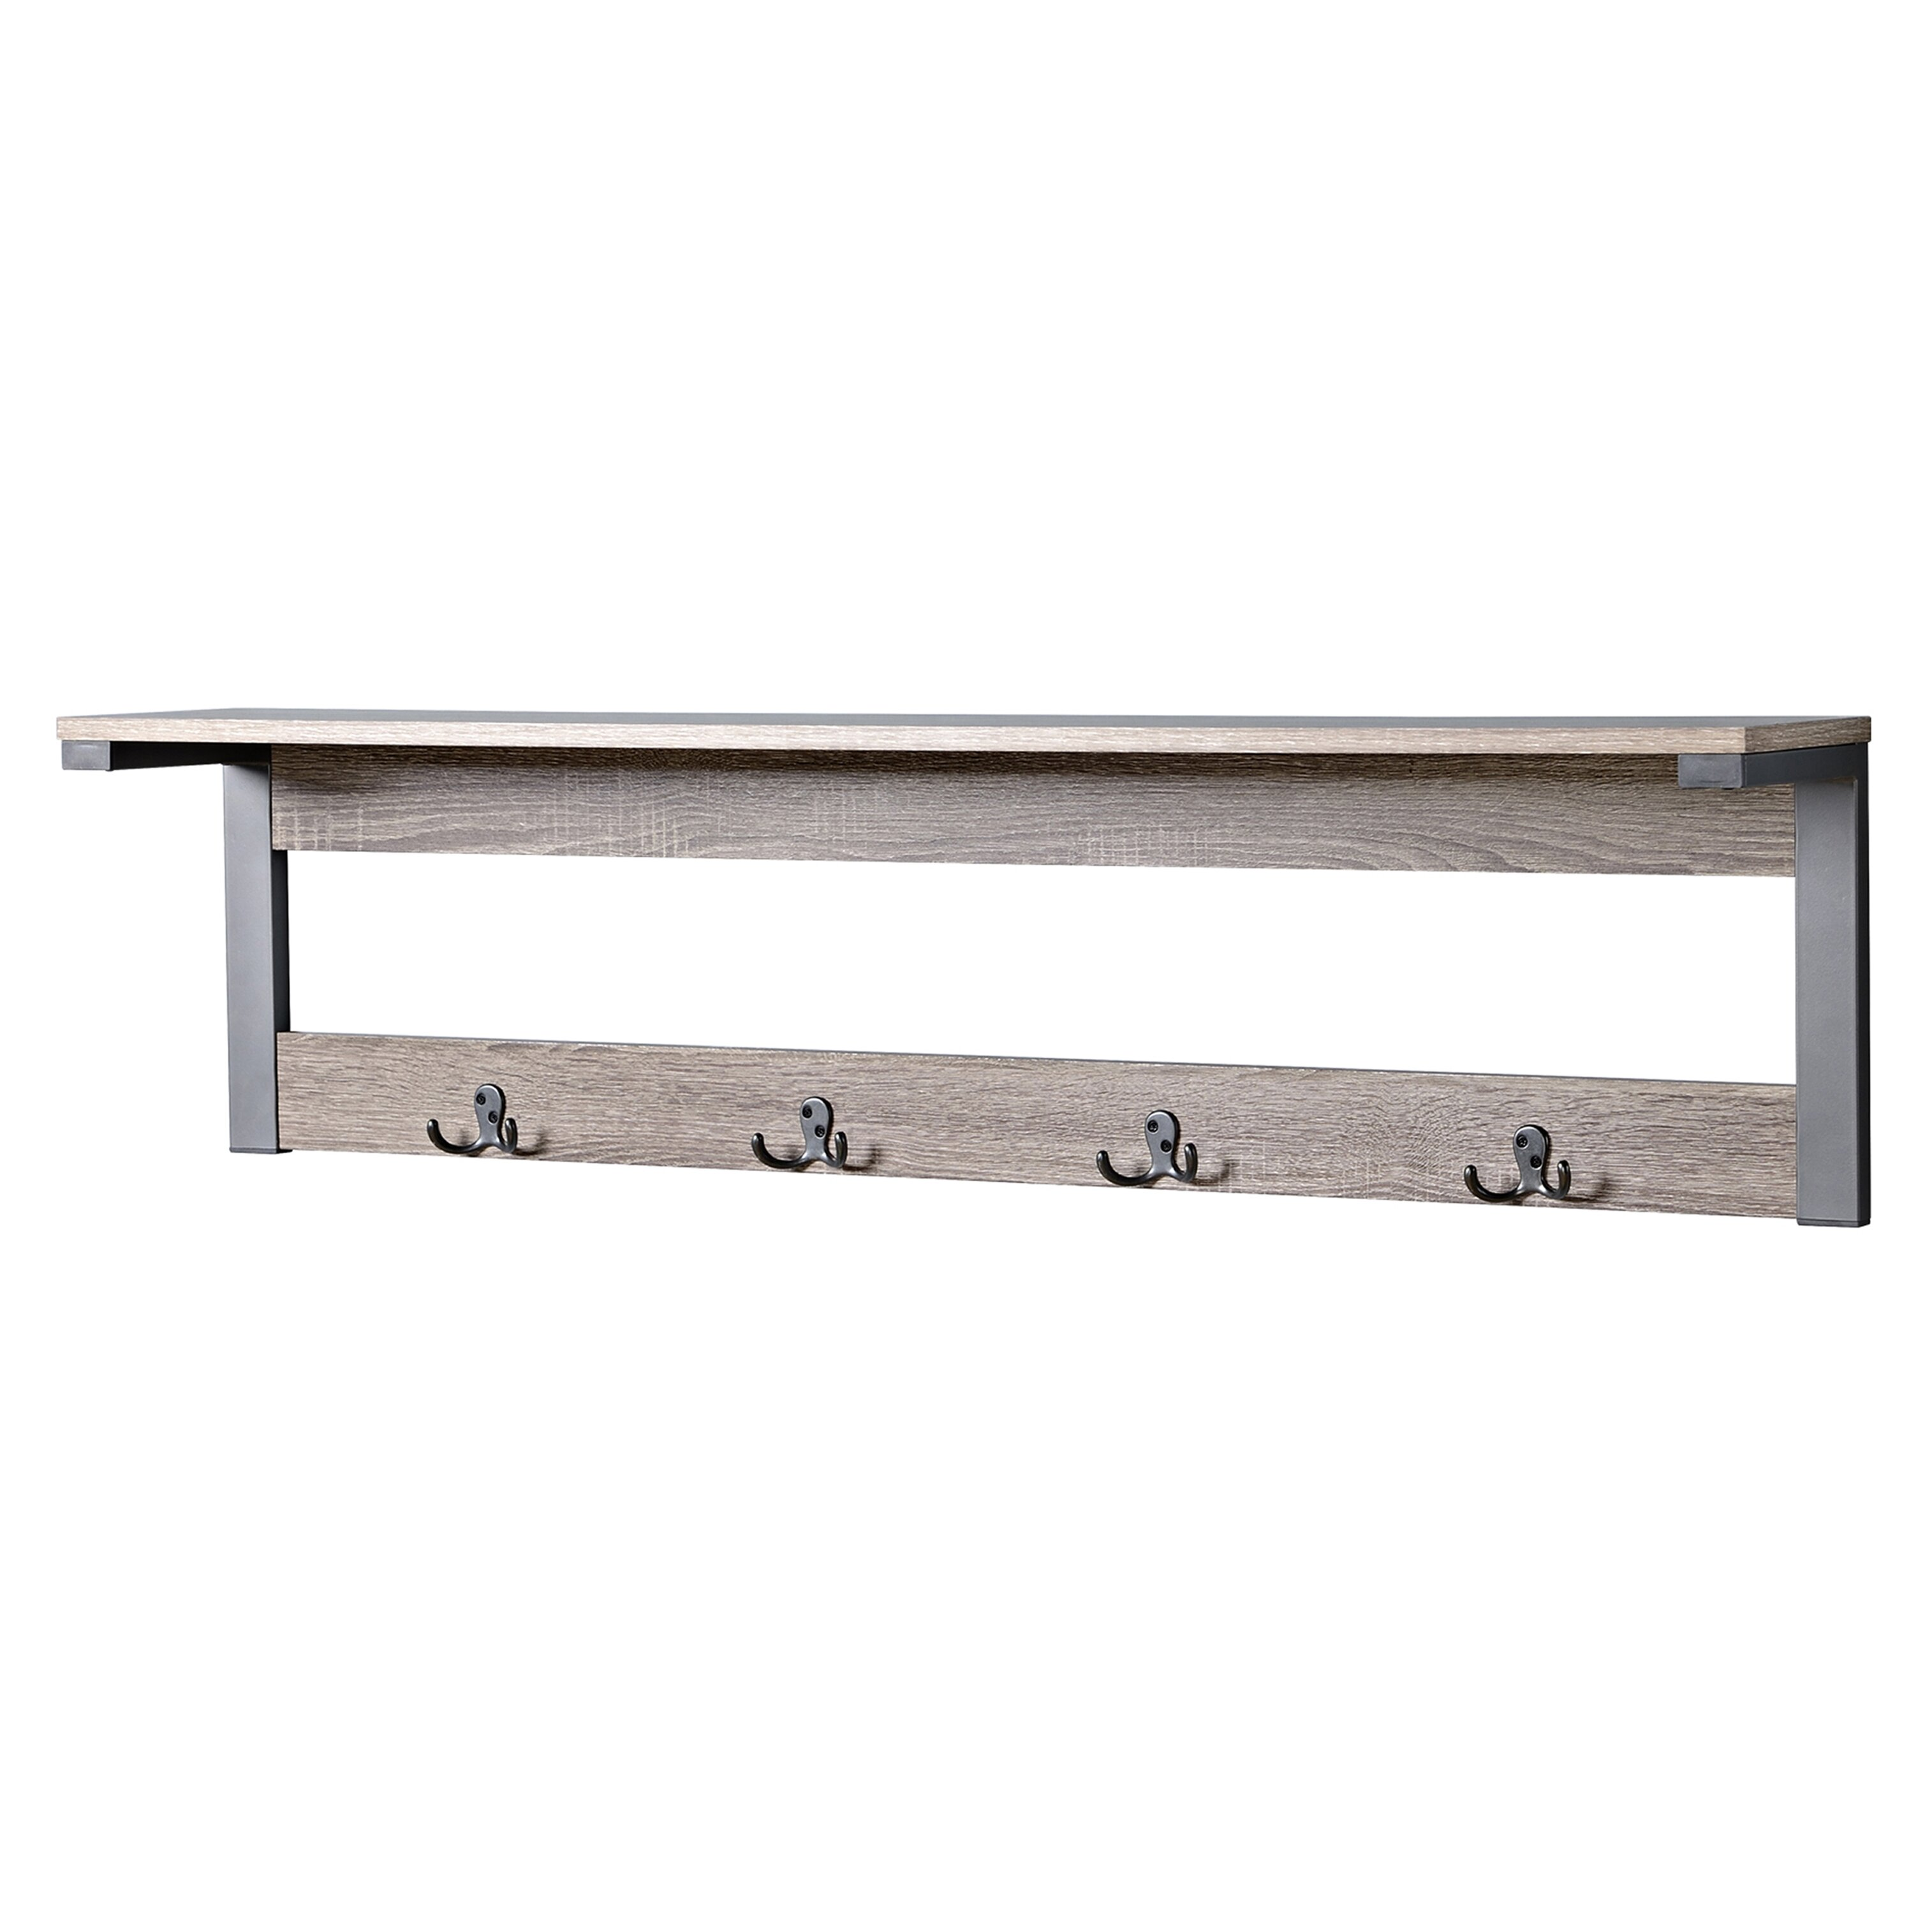 Homestar 1 Shelf 4 Hook Entryway Wall Mounted Coat Rack